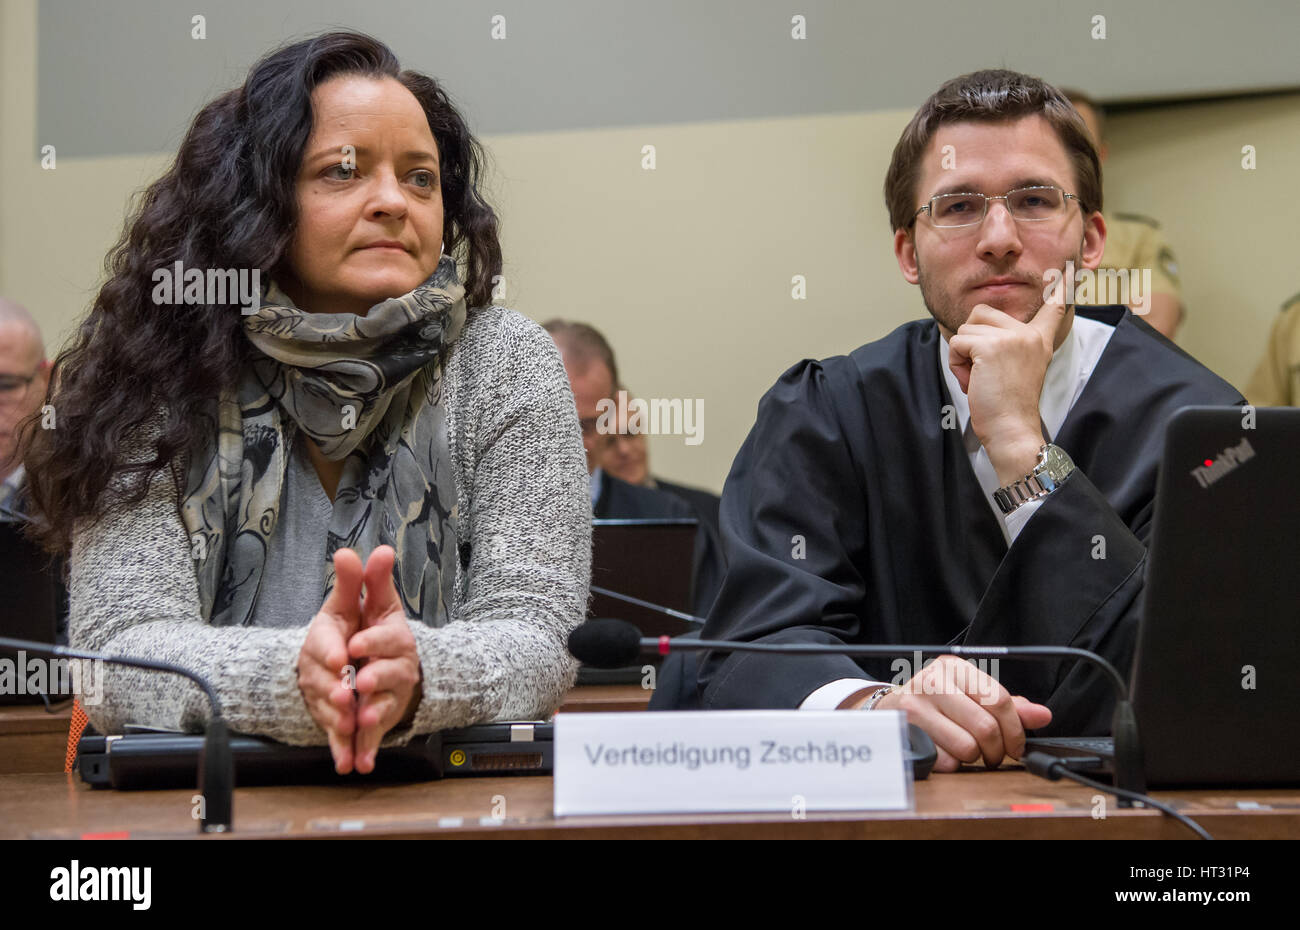 The Accused Beate Zschape Sits Next To Her Lawyer Mathias Grasel In The Court Room In The Higher Regional Court In Munich Germany